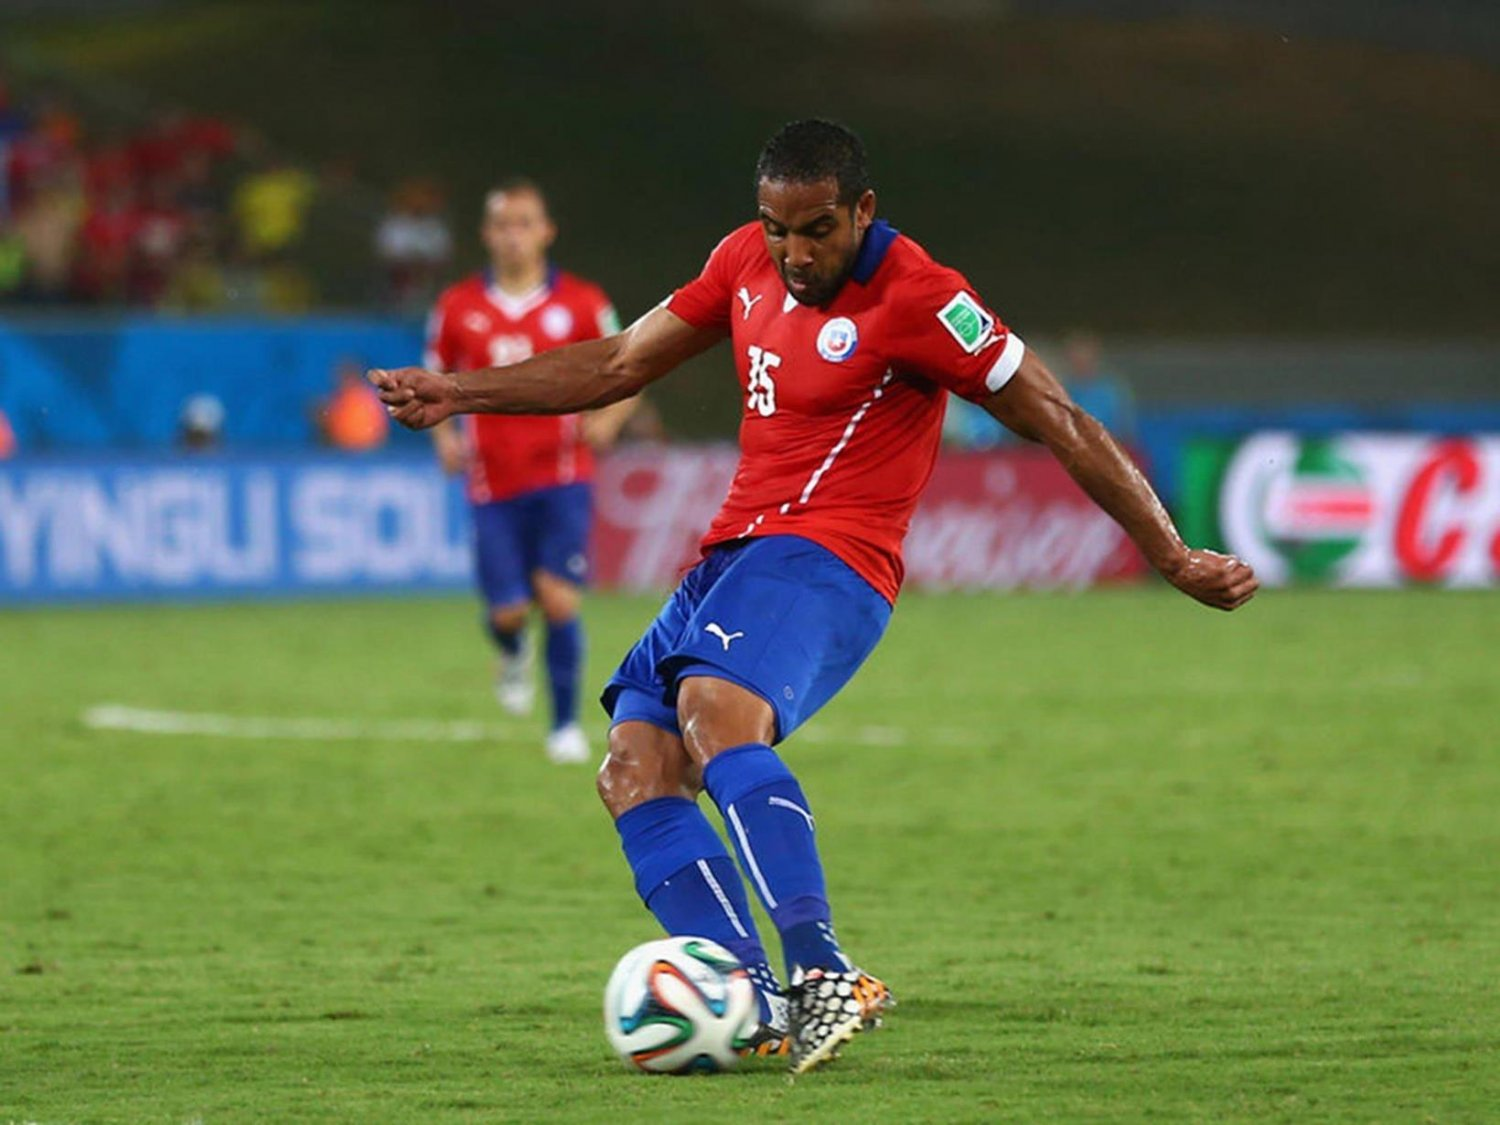 065 - 8 X 6 Photo - Football - FIFA World Cup 2014 - Chile V Australia Jean Beausejour